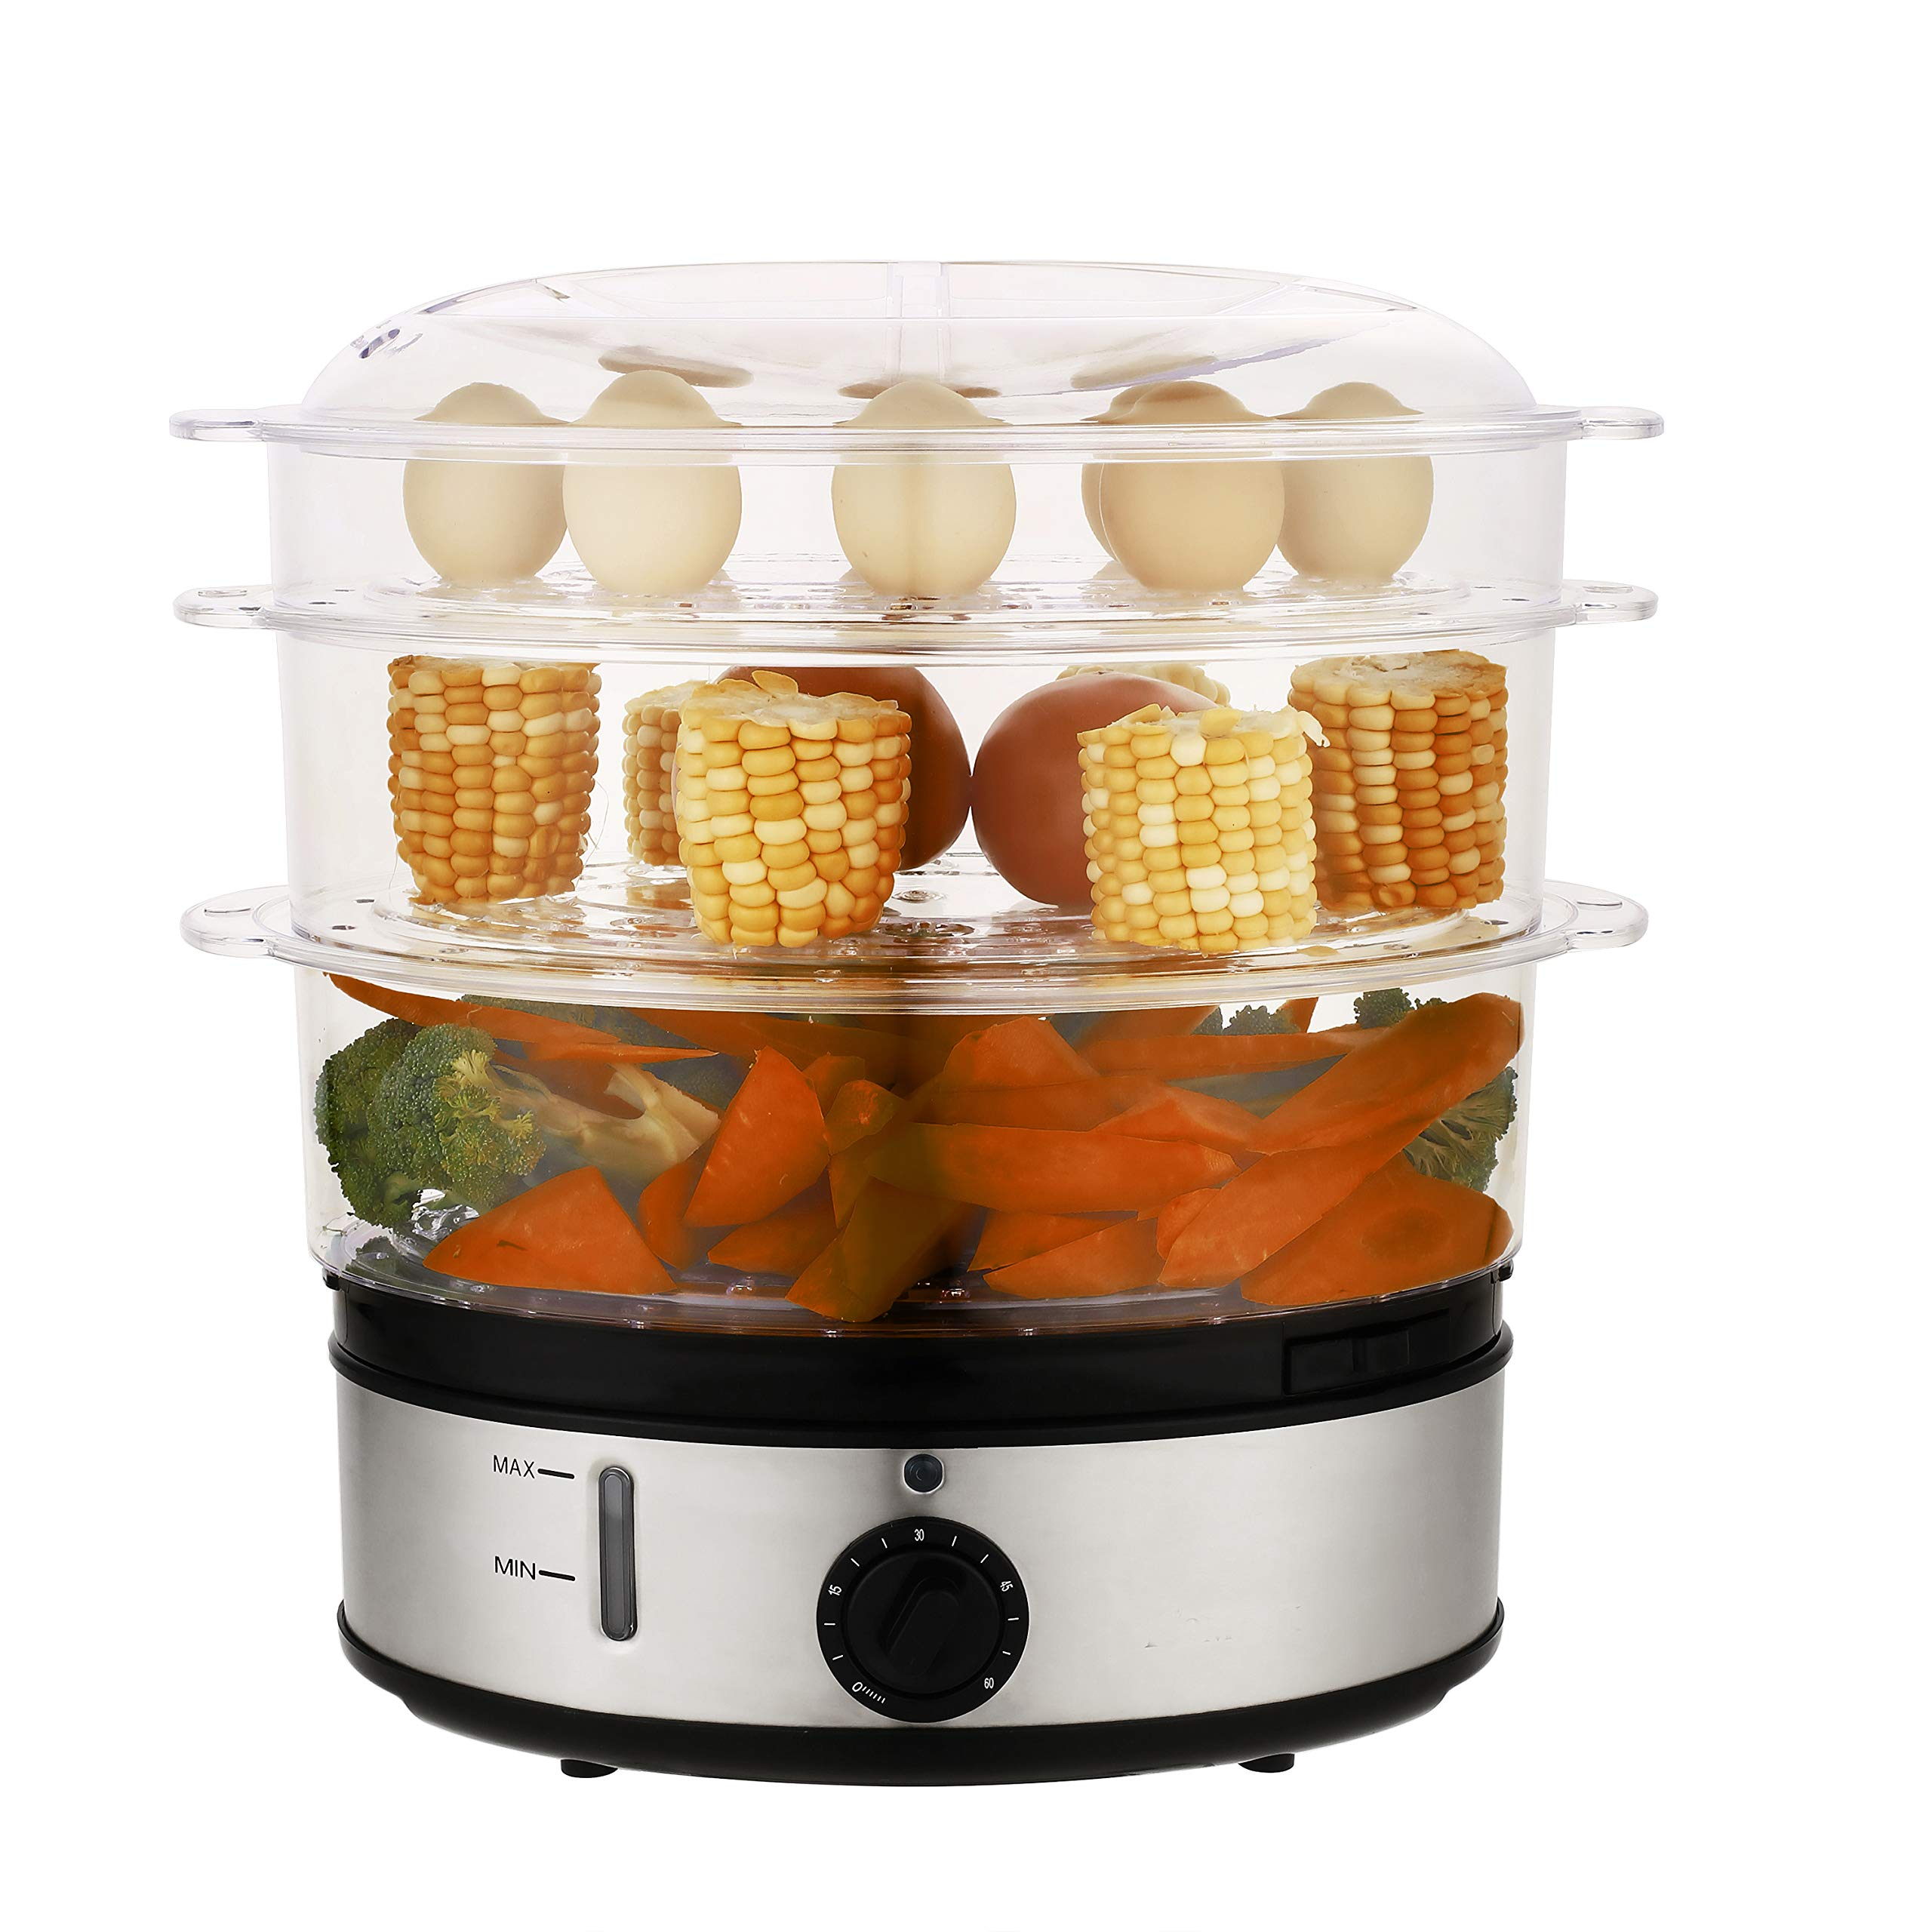 Domtie Food Steamer Vegetable Steamer with 3 Tier Stackable Baskets, timer, Auto Shut-off, BPA Free, Electric Steamer 800W Fast Heat up